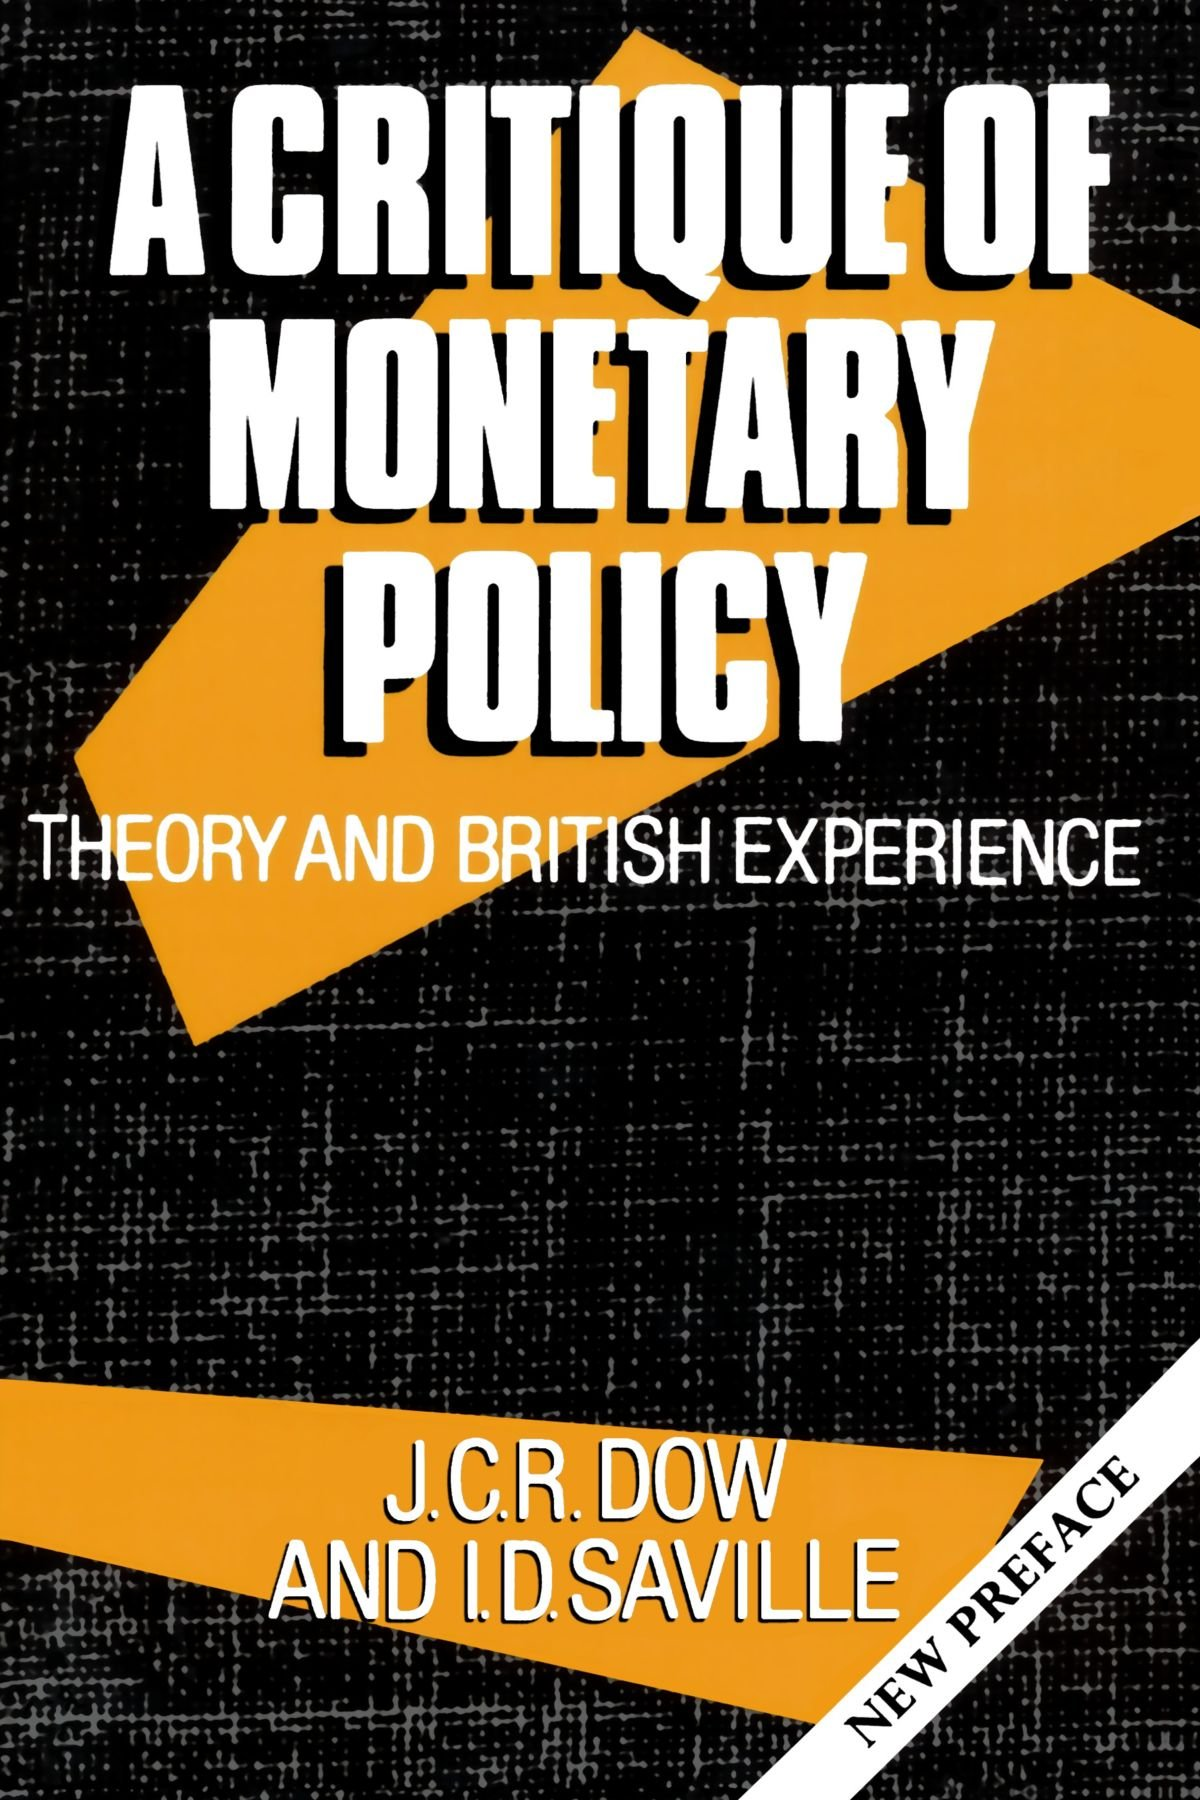 A Critique of Monetary Policy: Theory and British Experience (Clarendon Paperbacks)